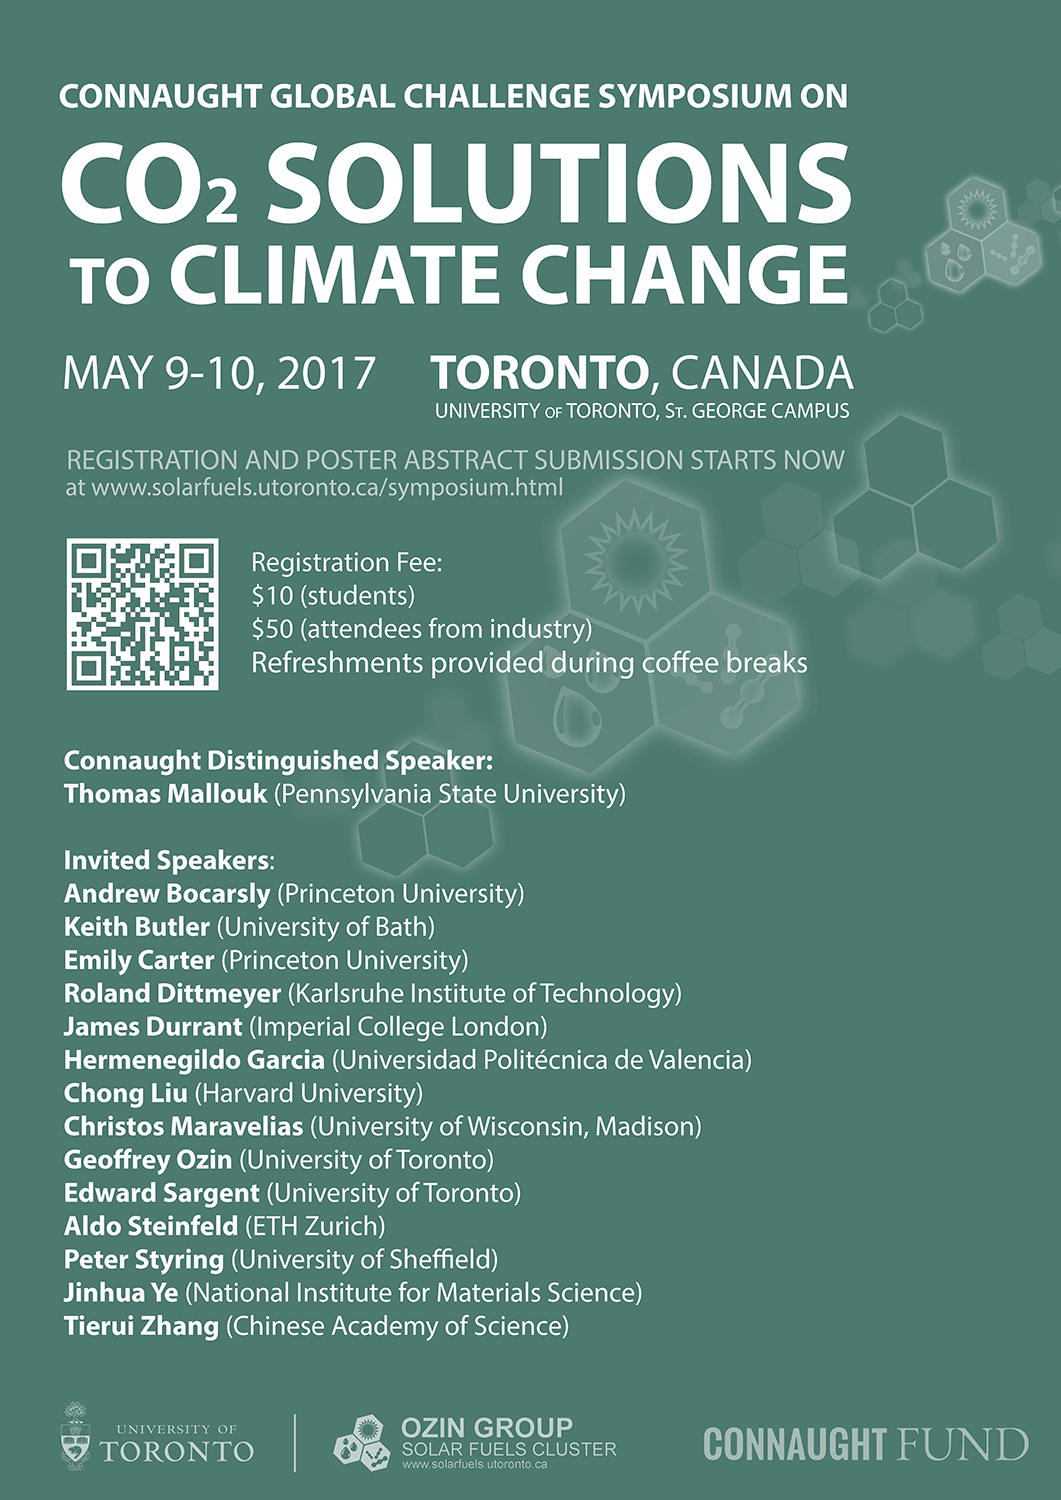 Institute for sustainable energy university of toronto ls cluster at the university of toronto is proud to announce details of our connaught global challenge symposium on co2 solutions to climate change xflitez Images